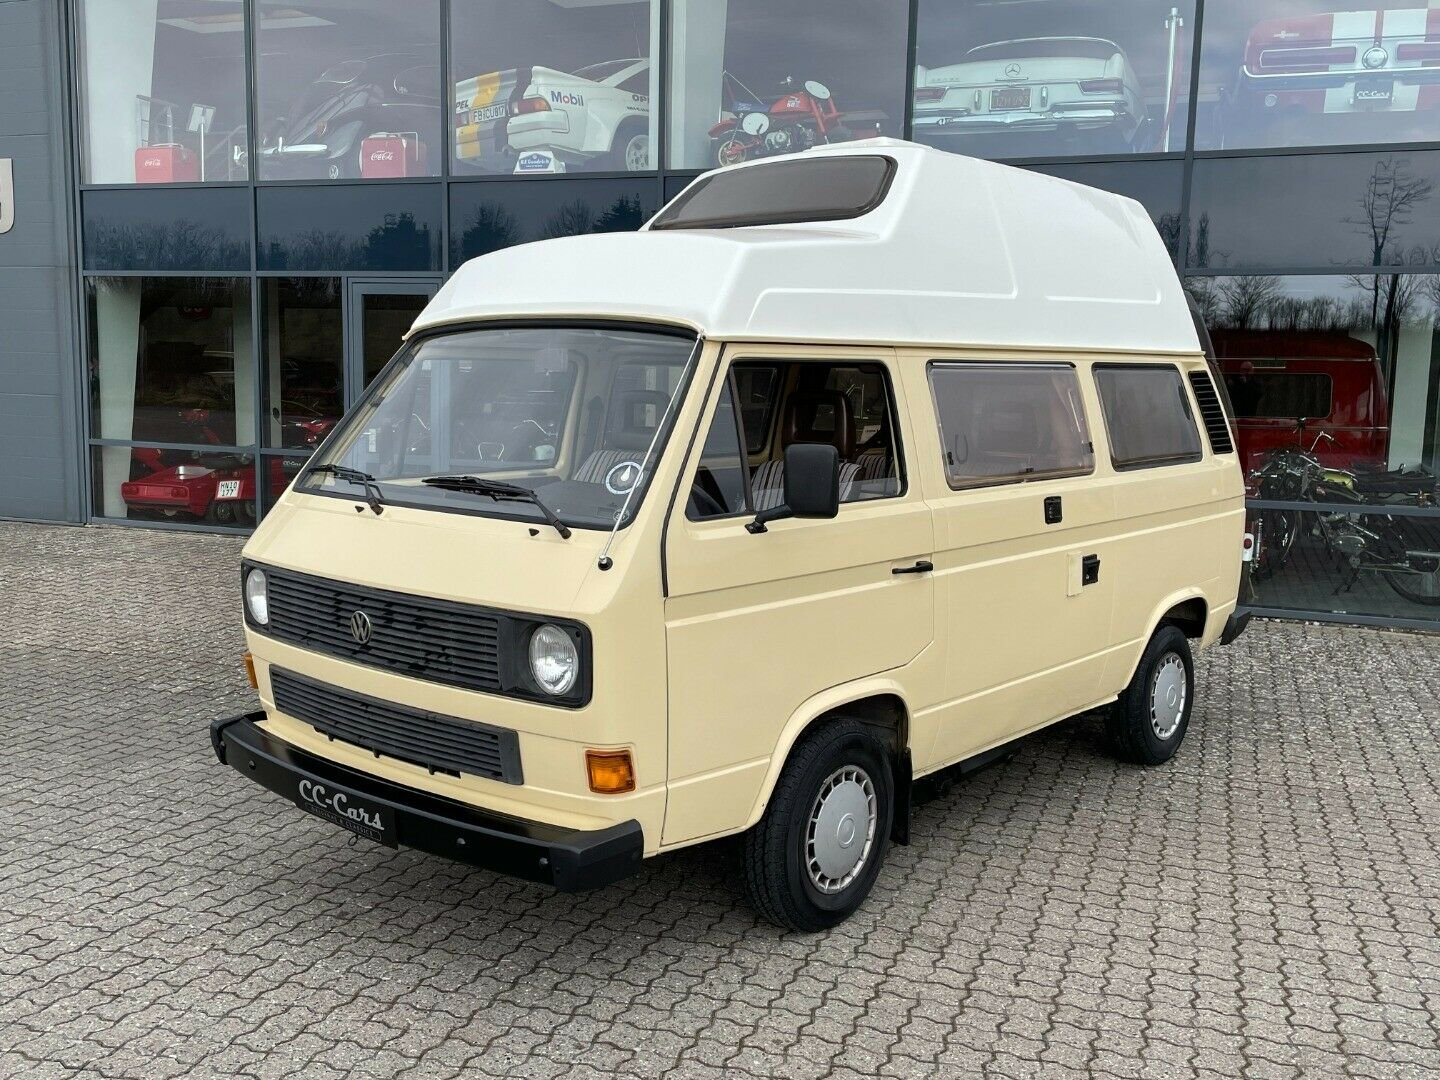 1983 Nice Westfalia! For Sale (picture 2 of 12)